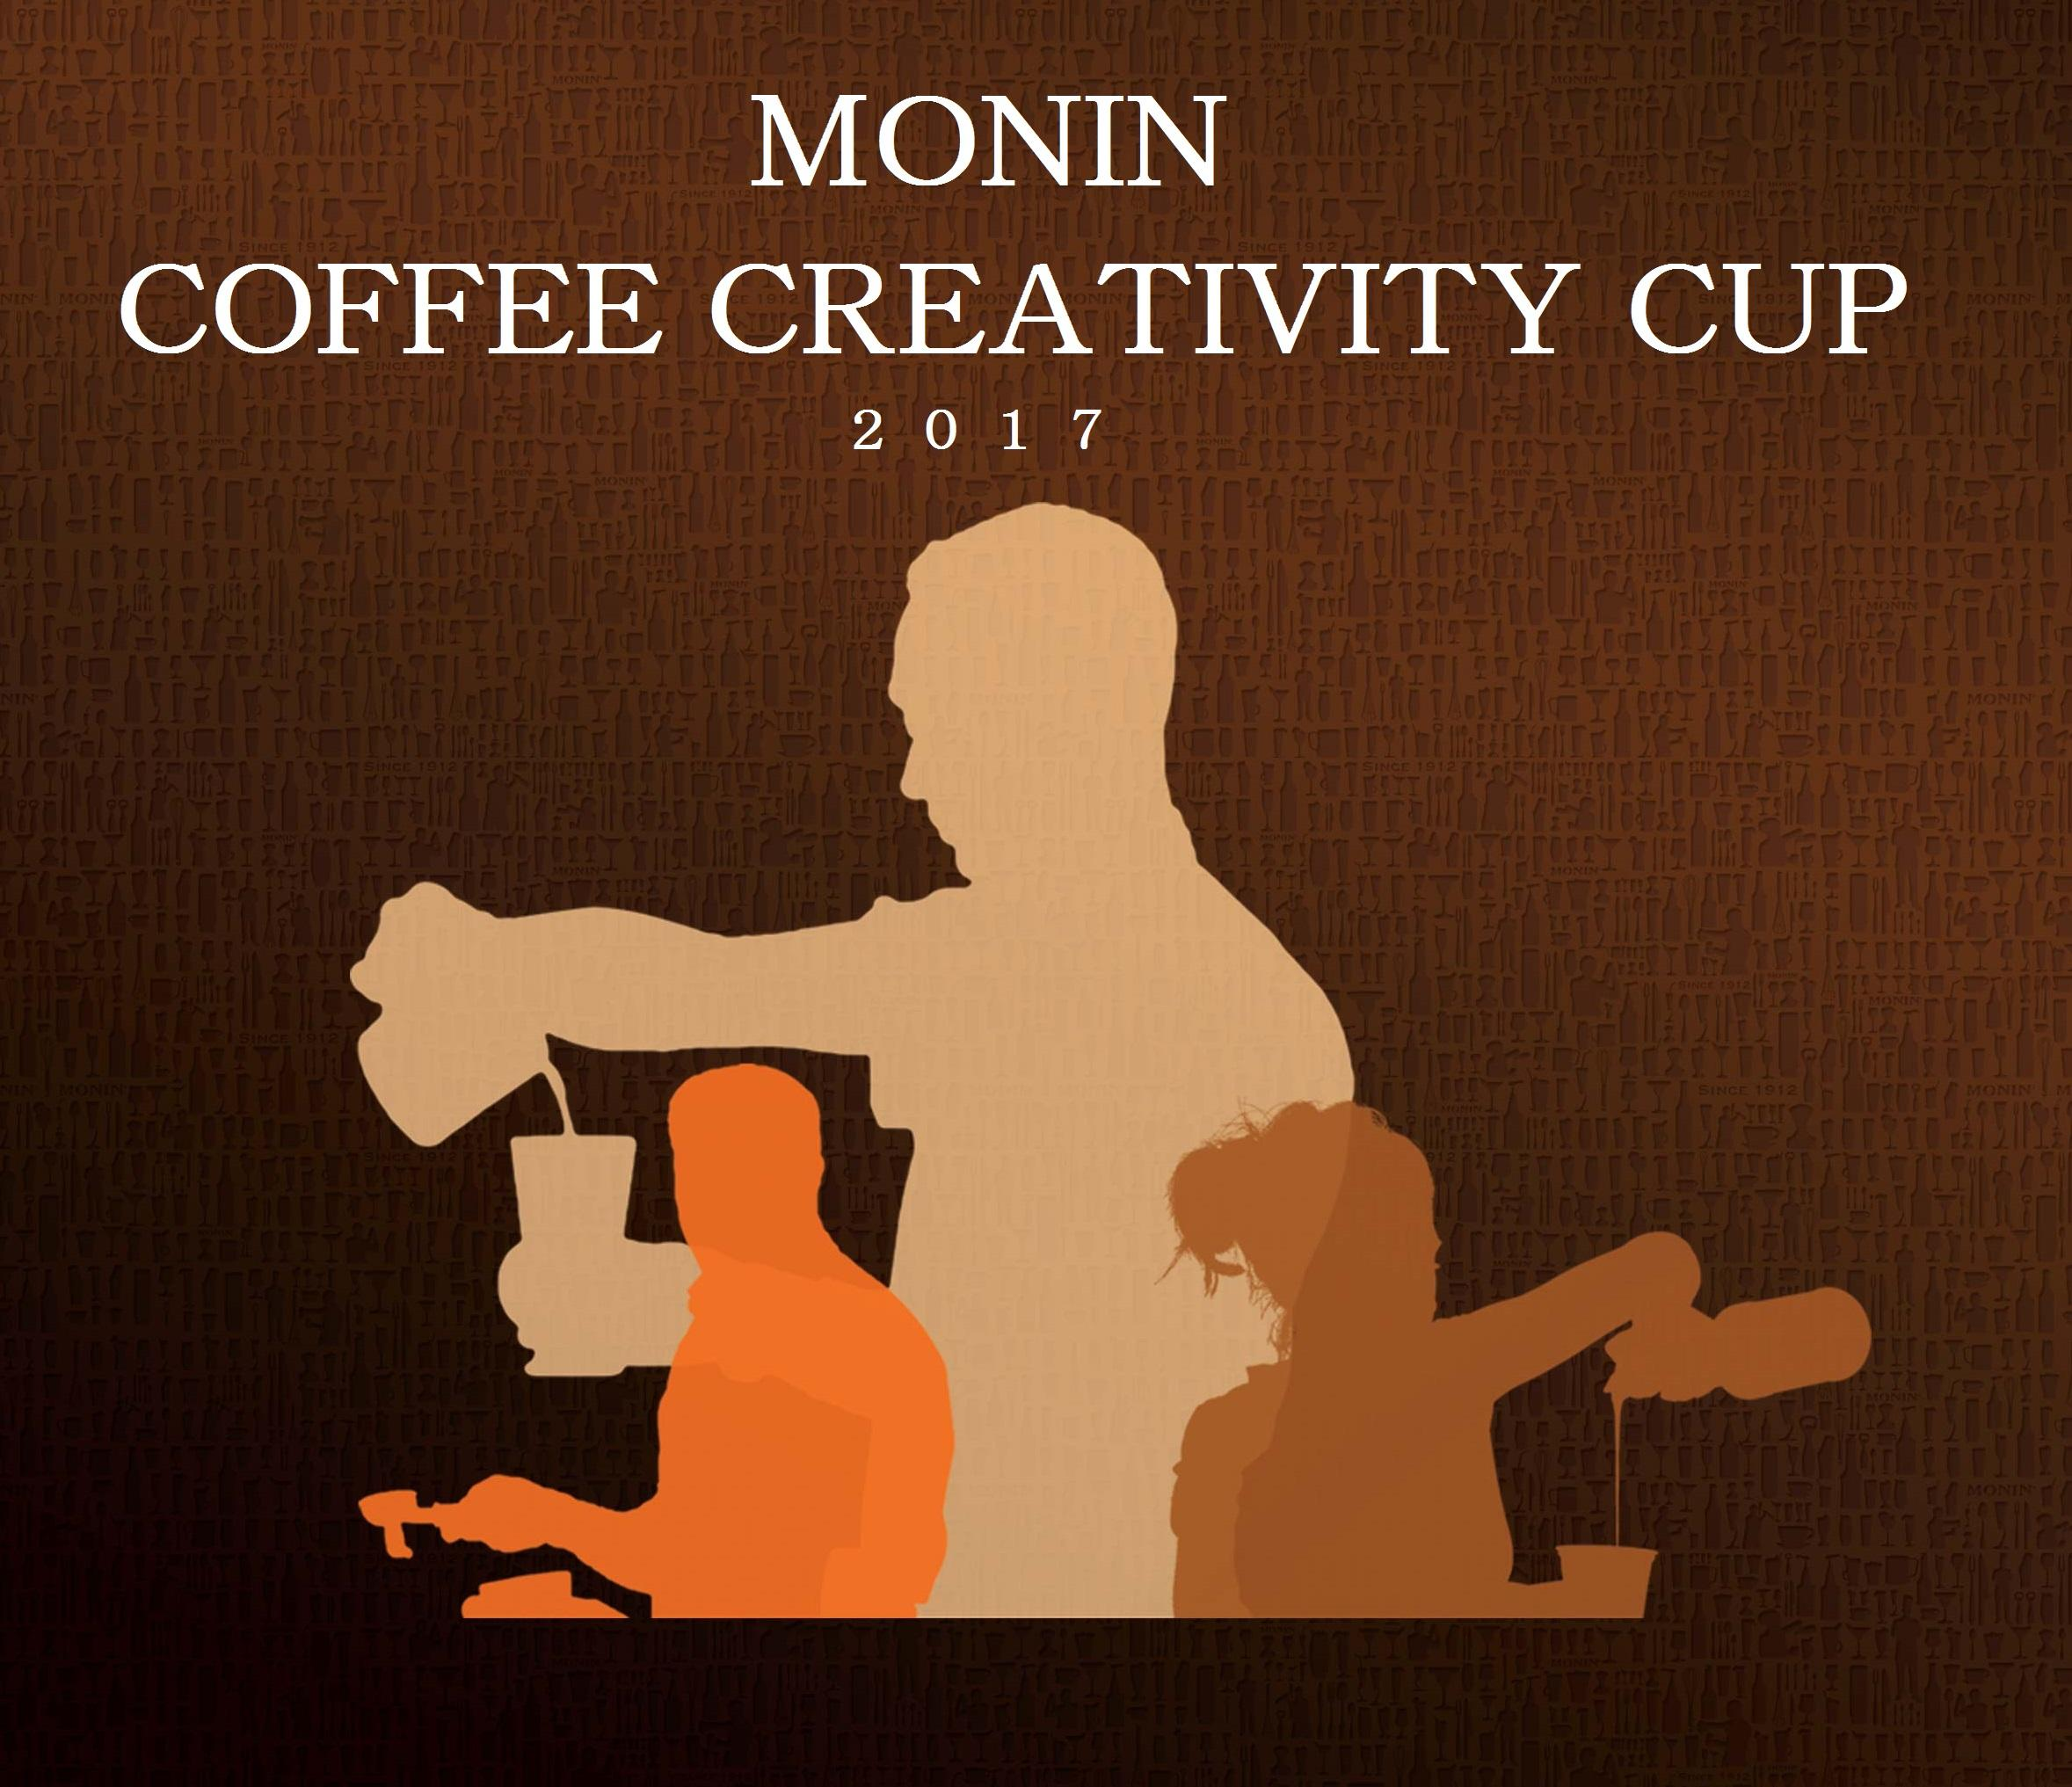 MONIN Coffee Creativity Cup 2017